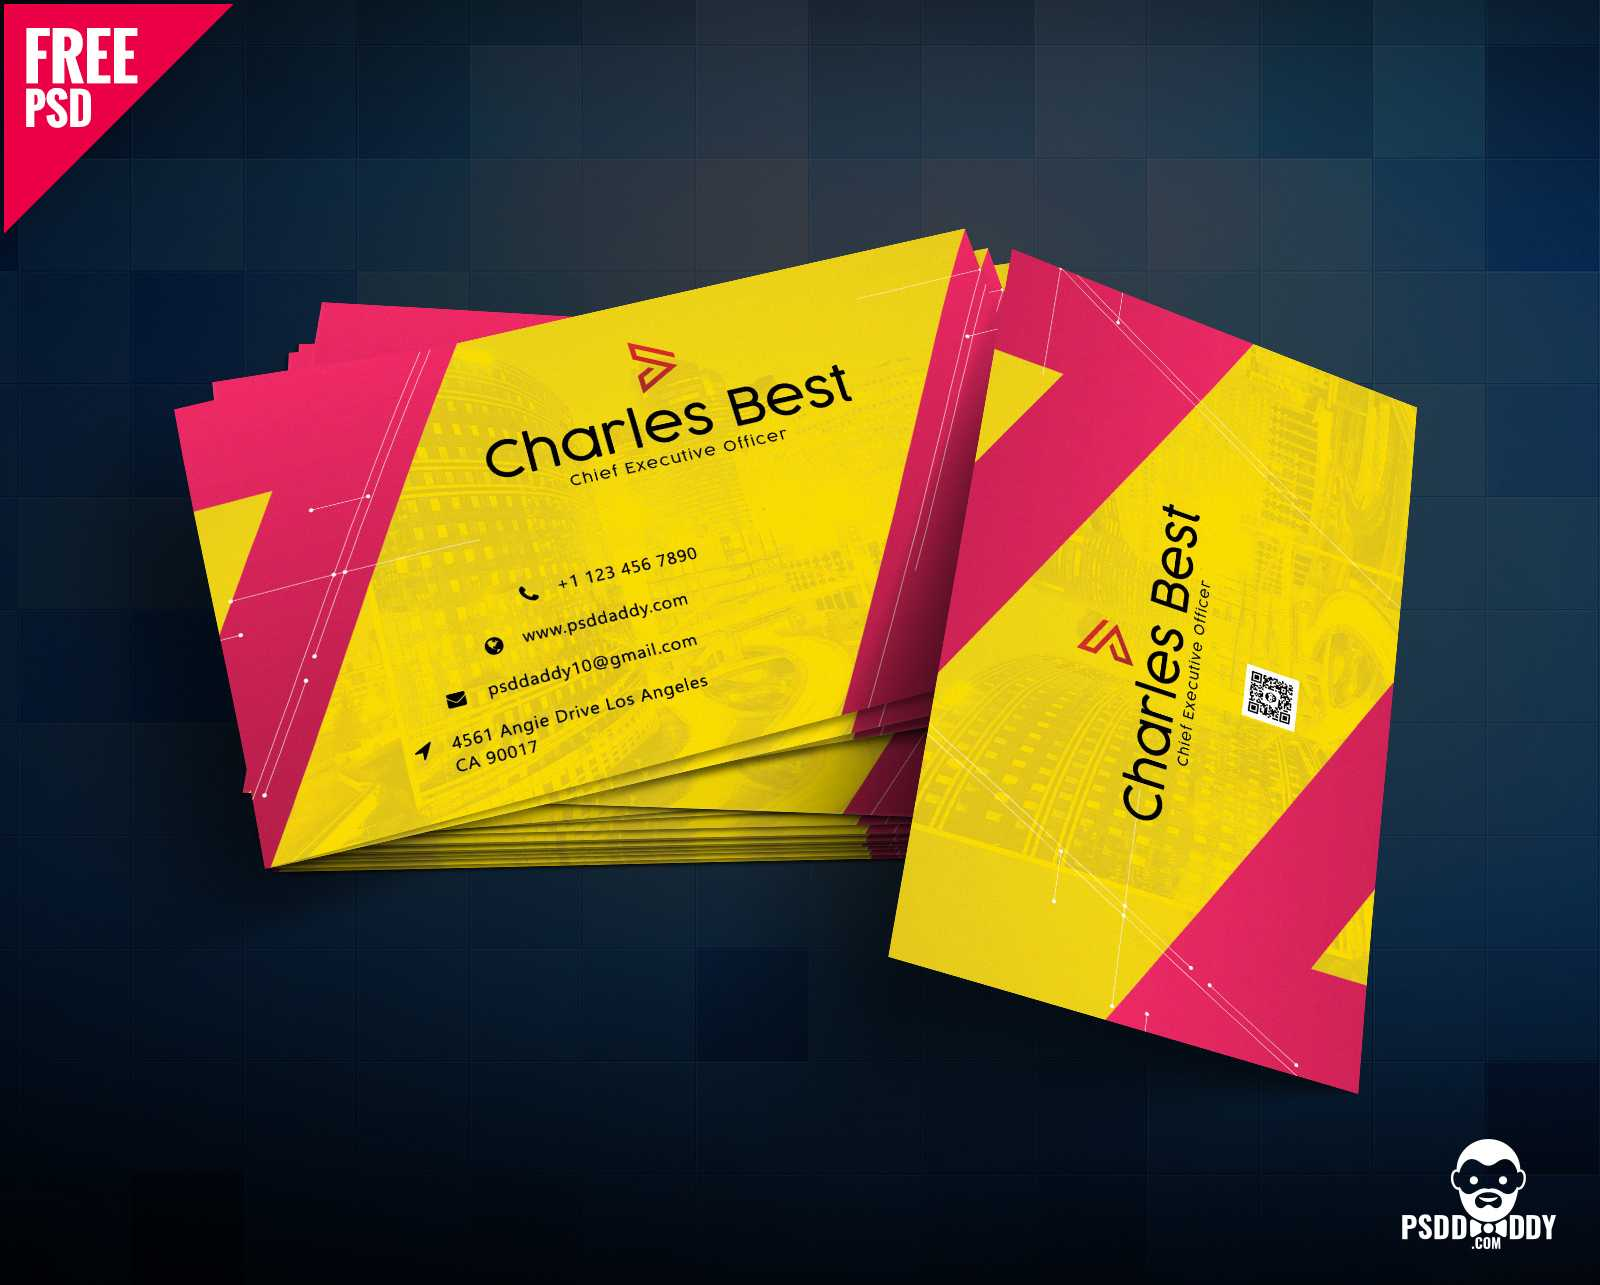 Download] Creative Business Card Free Psd | Psddaddy Within Psd Visiting Card Templates